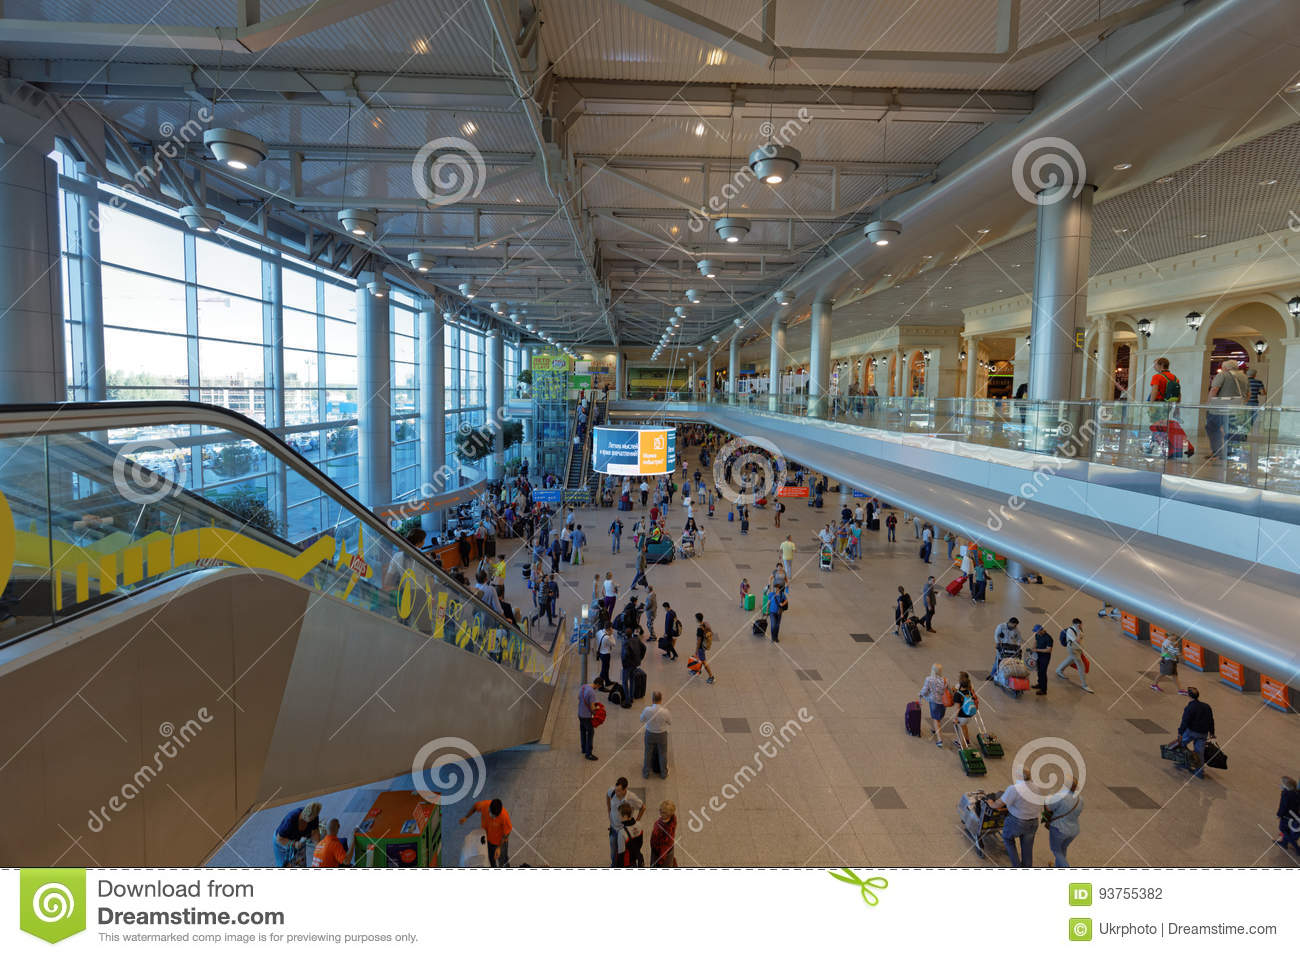 Domodedovo Airport, take pity on people, please 77